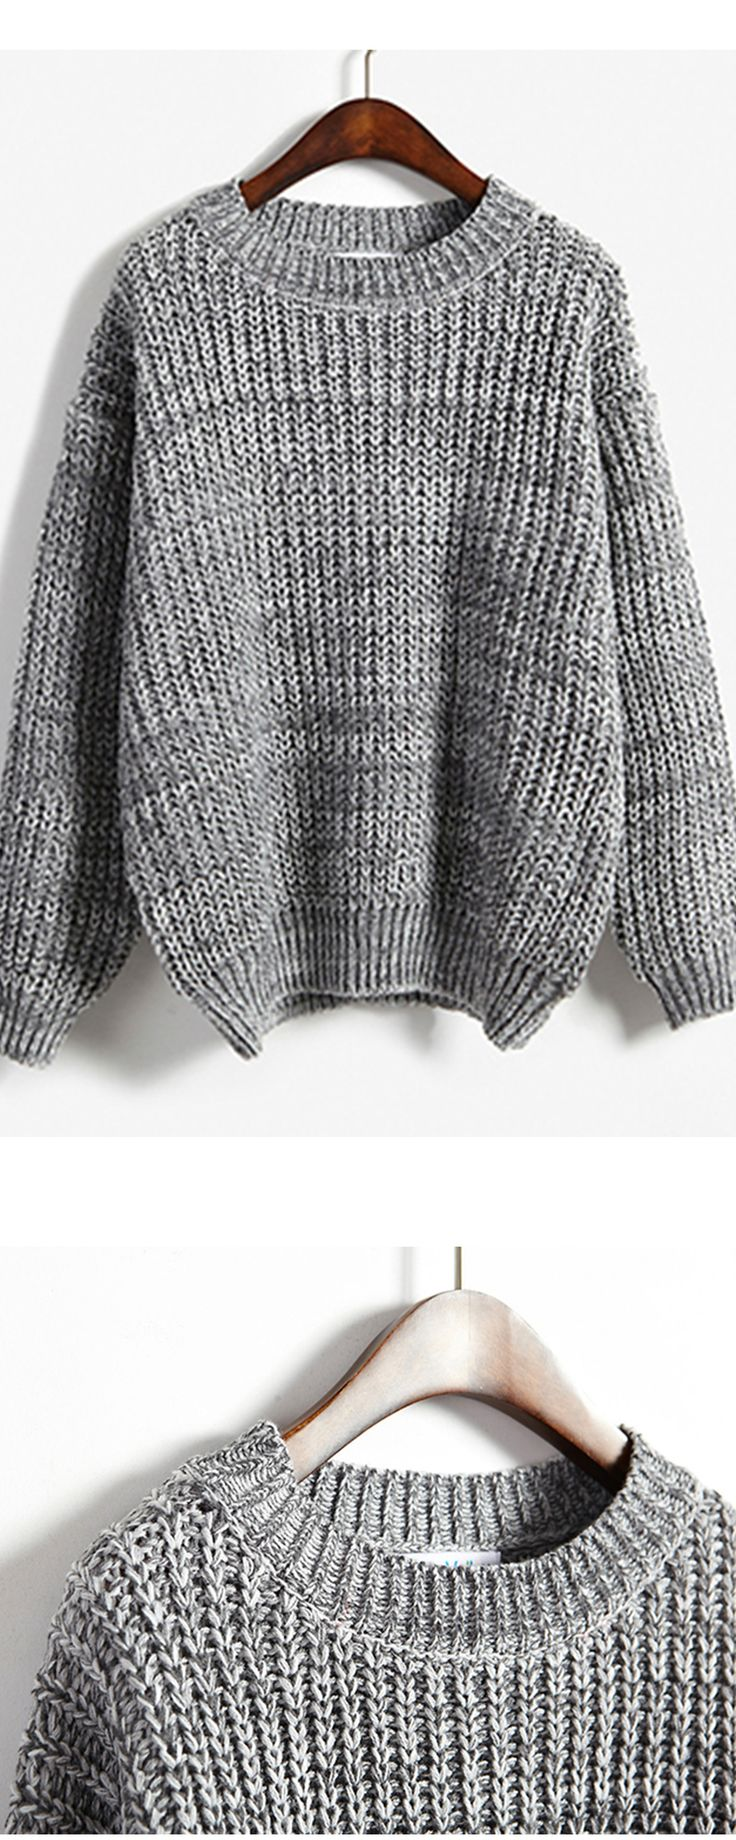 Warm knitwear at romwe.com. Loose Grey Dolman Sweater. Take it with 60% off yout 1st with free shipping!